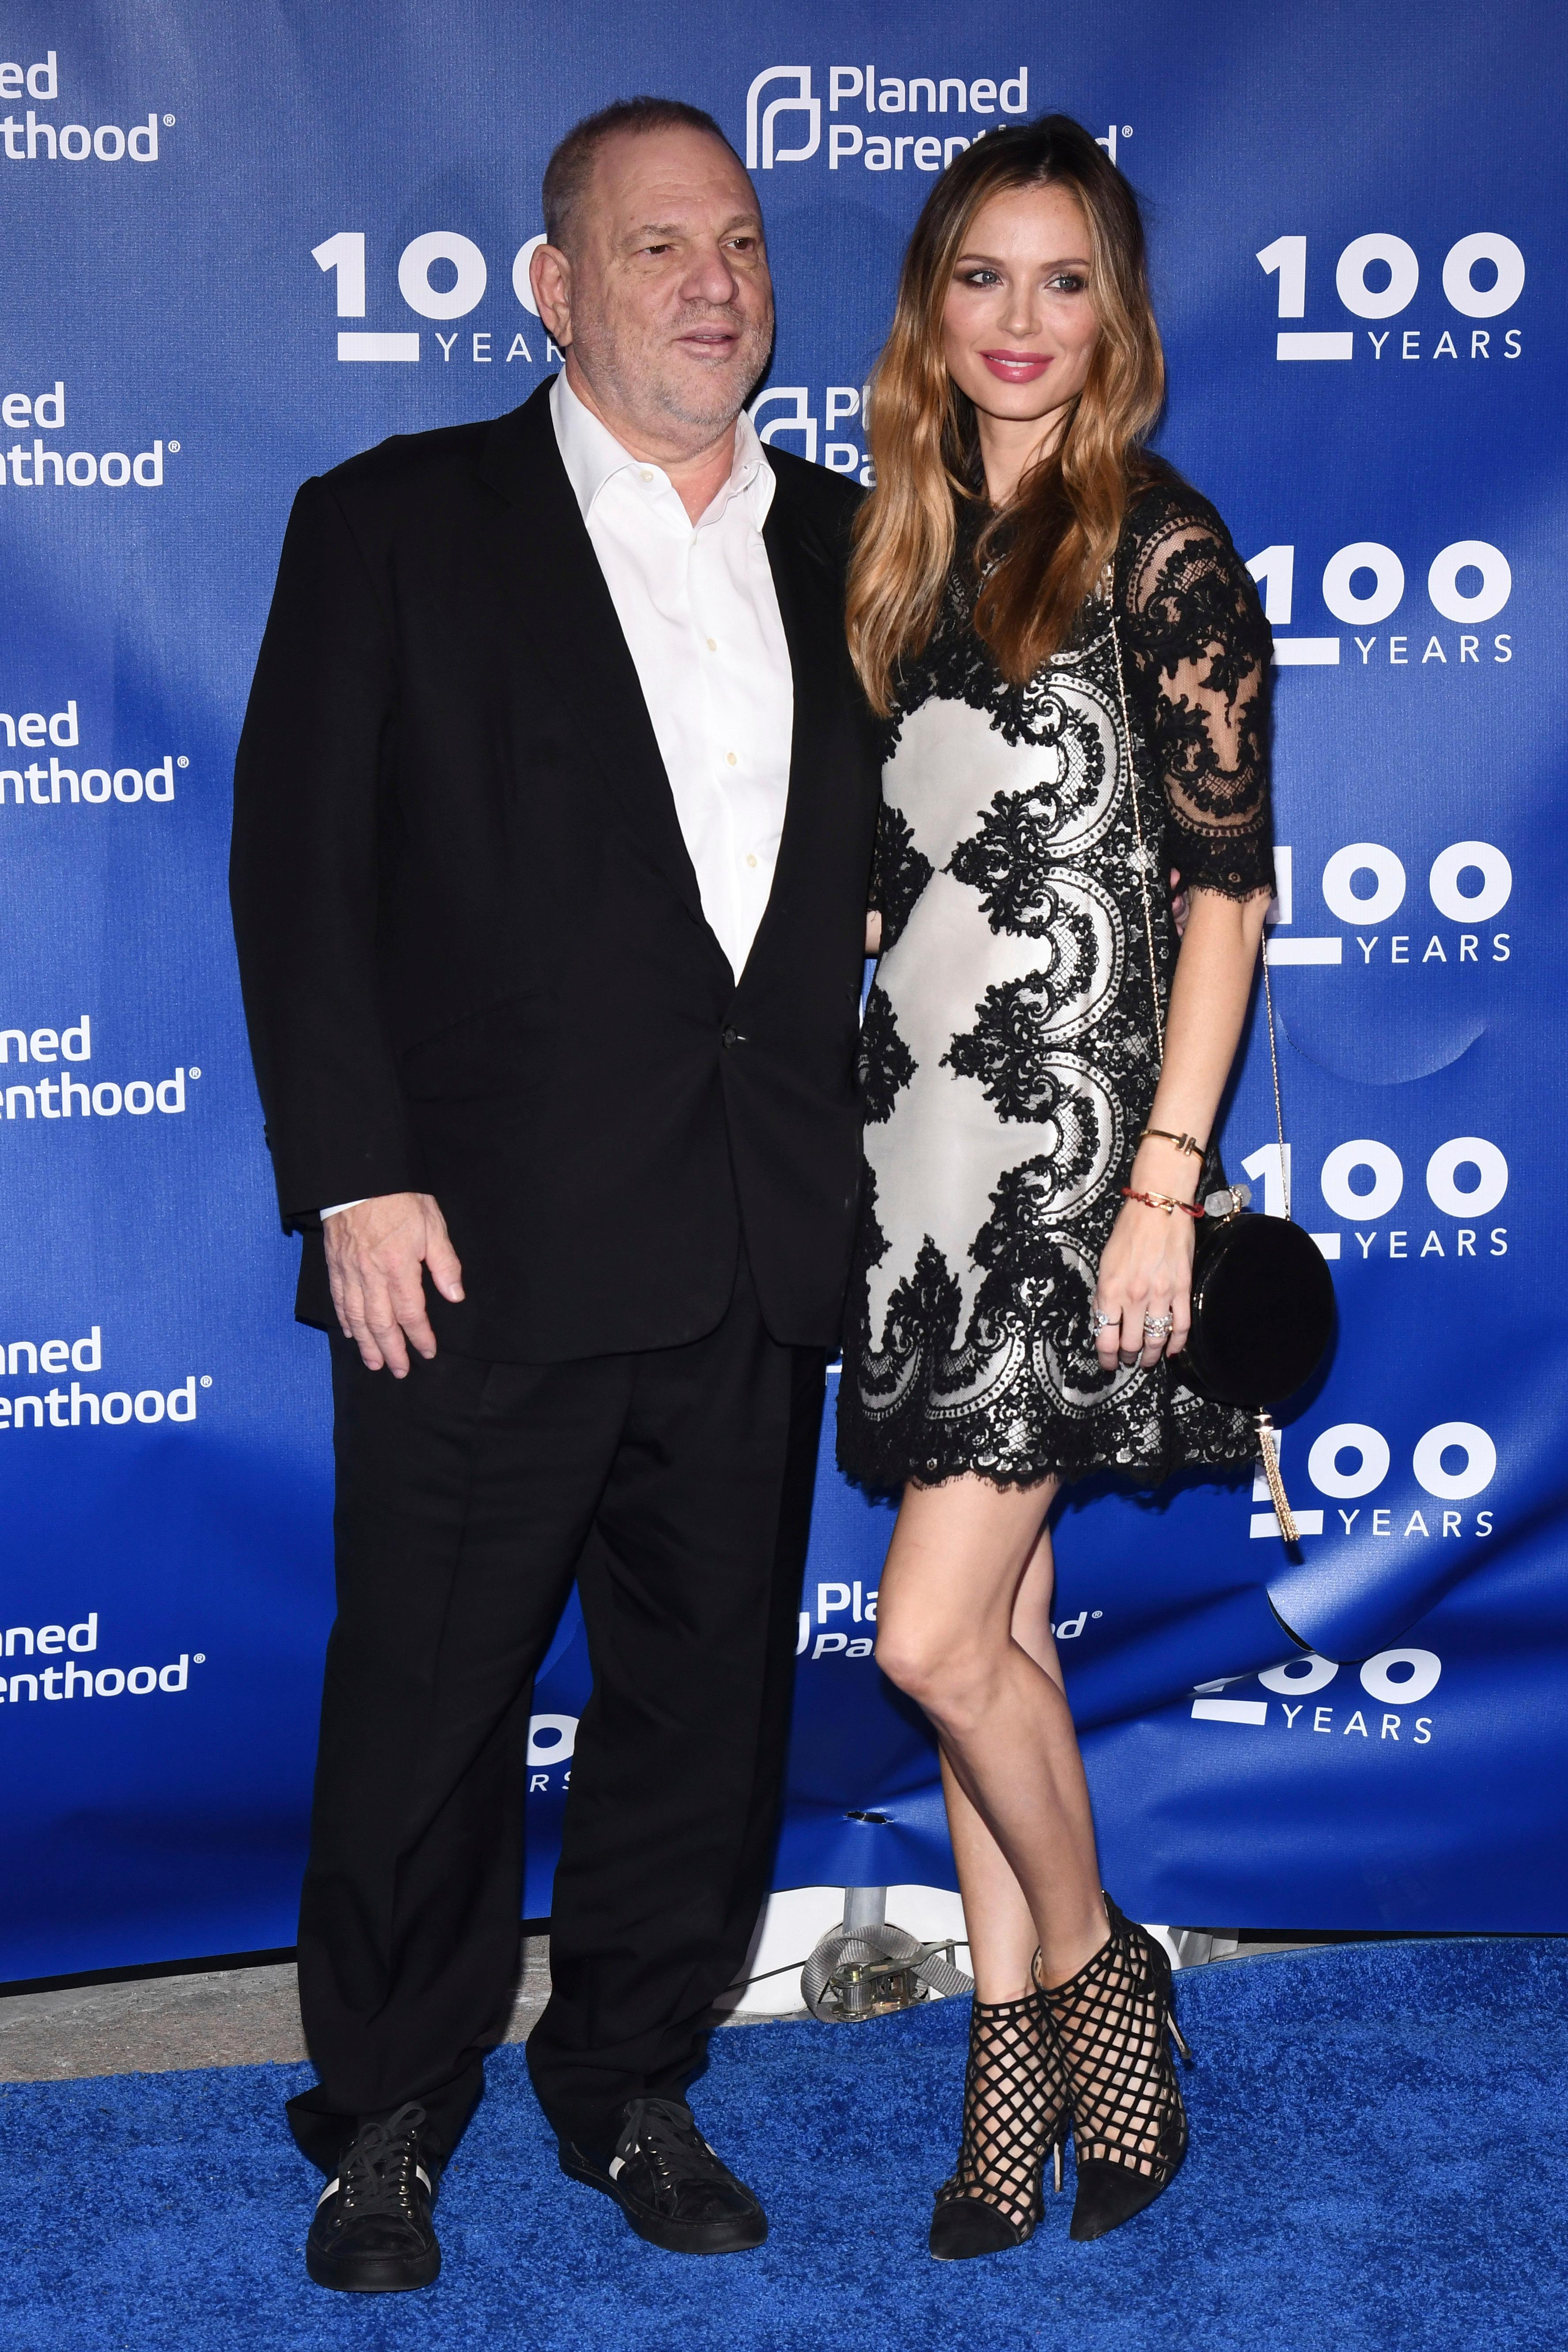 Harvey Weinstein and Georgina Chapman attend the Planned Parenthood 100th Anniversary Gala on Tuesday, May 2, 2017 in New York. (Photo by Charles Sykes/Invision/AP)